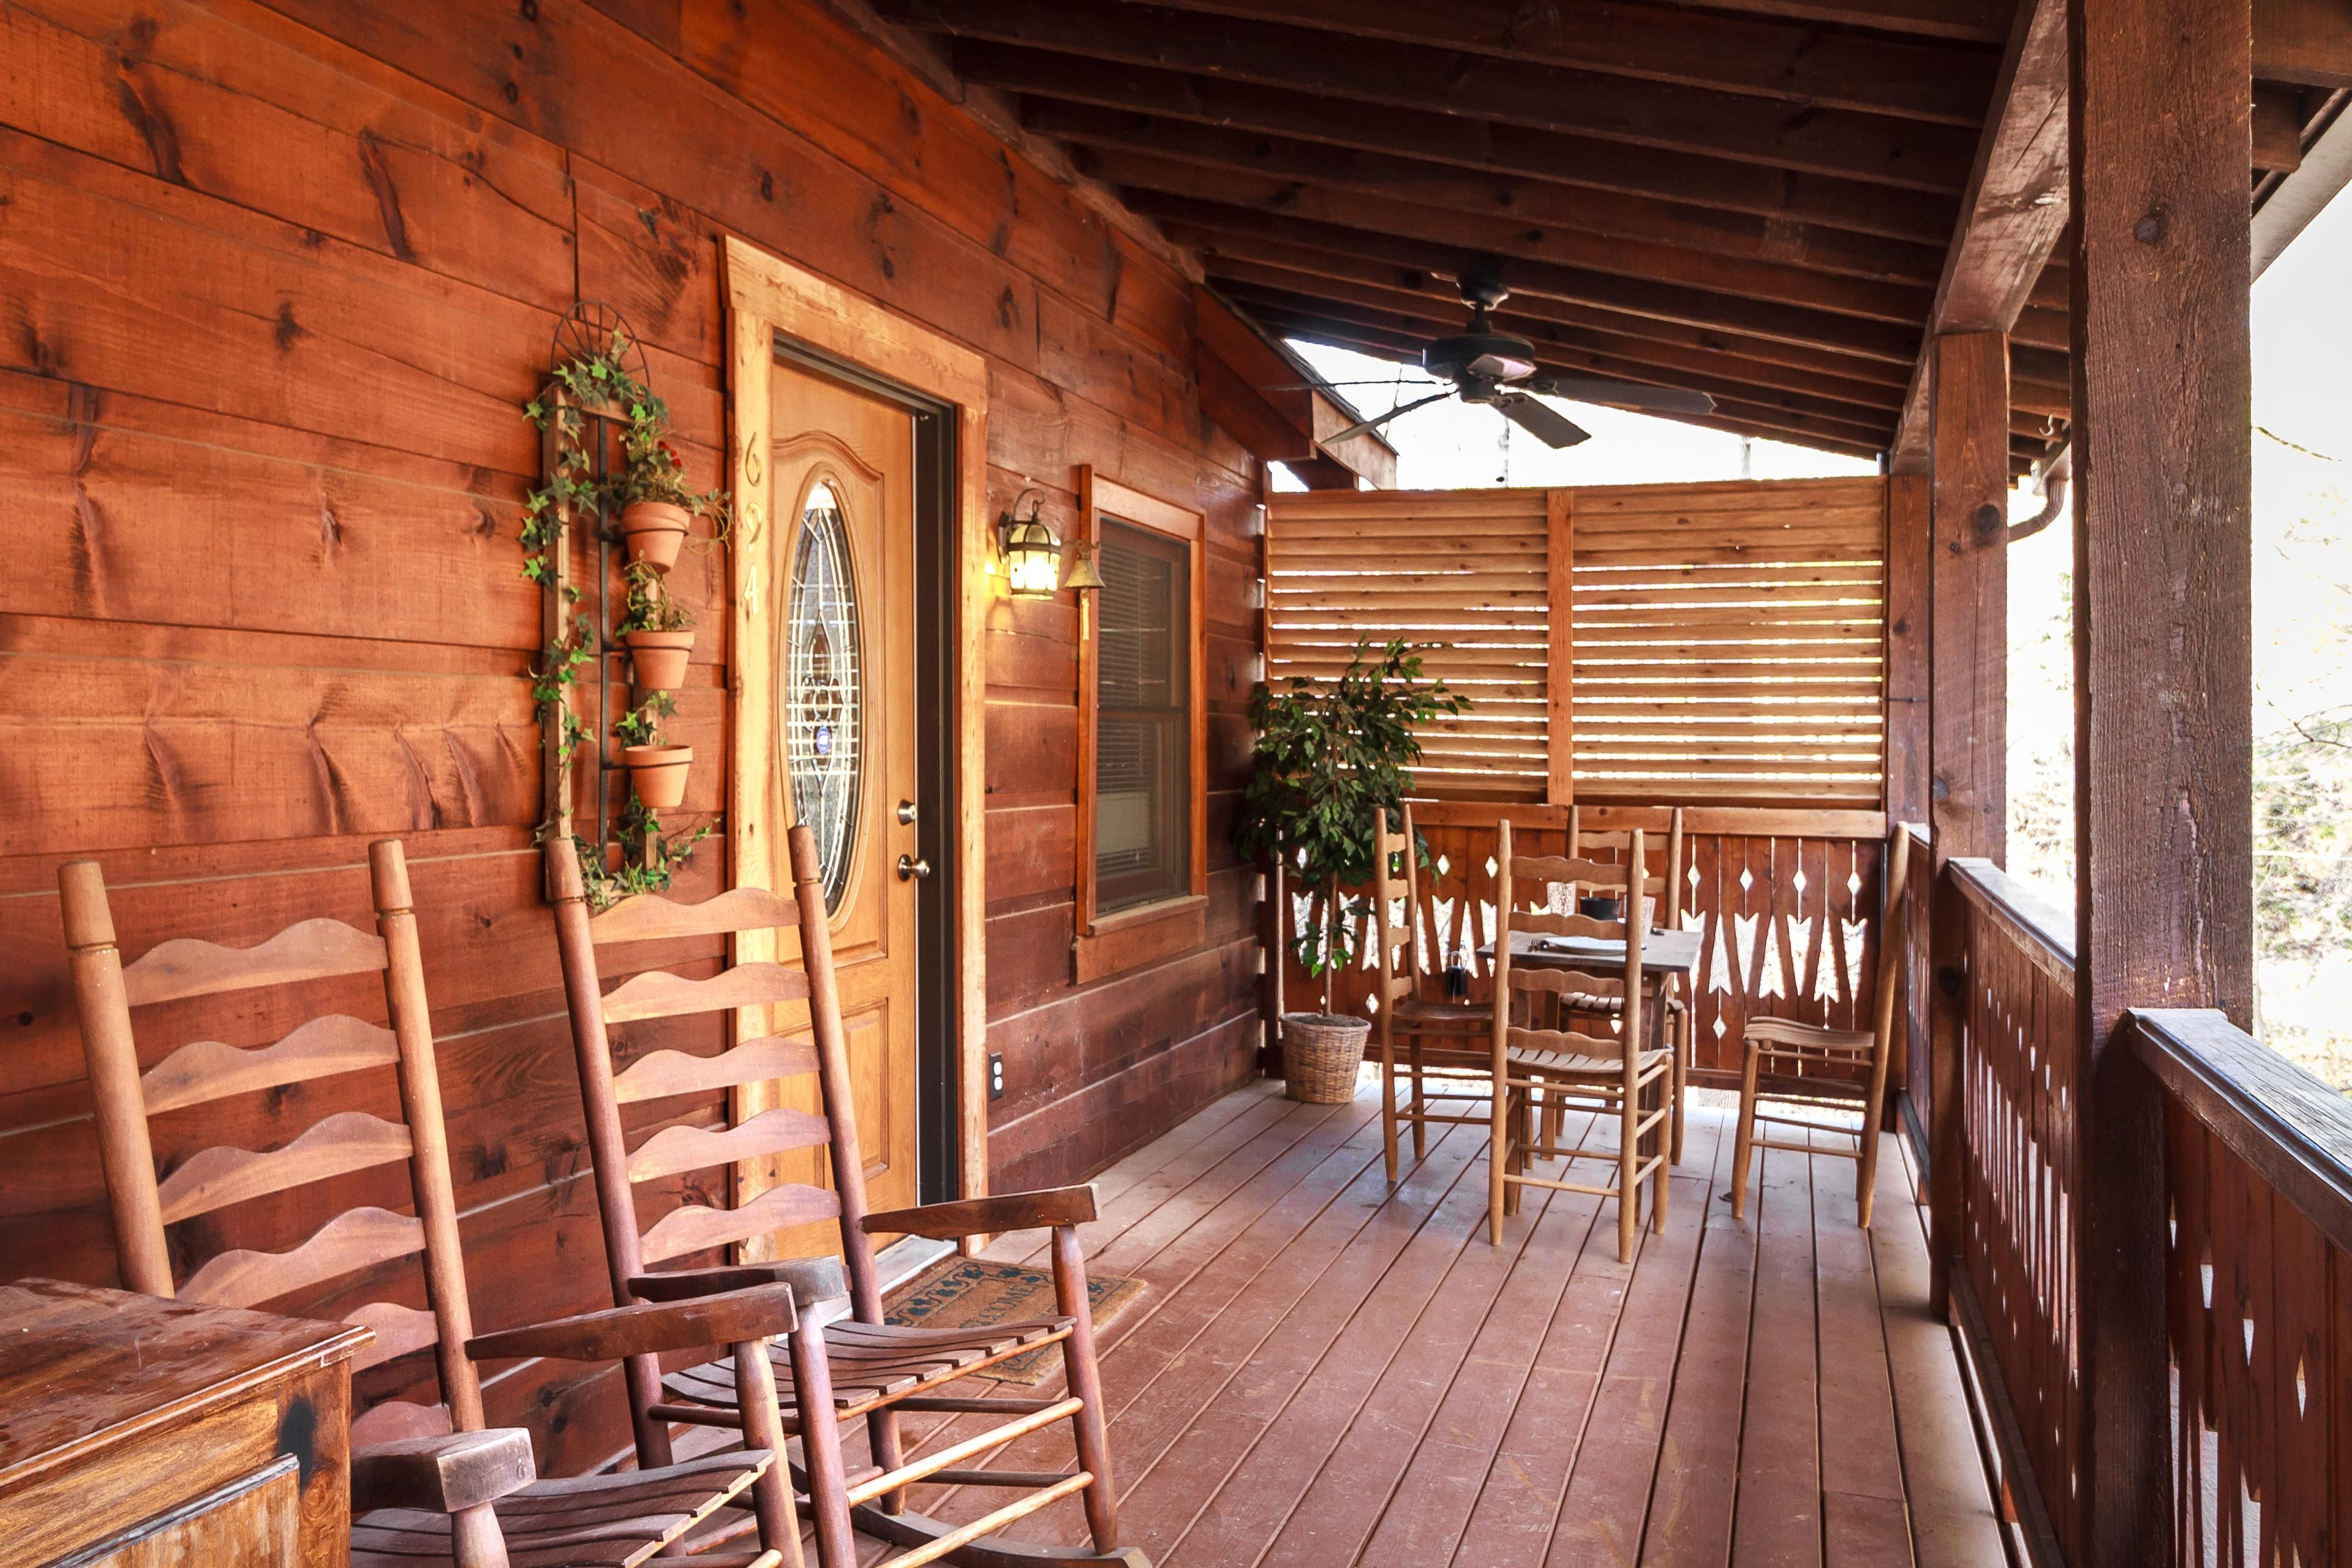 gatlinburg nob rentals cabins in directory attractions updated tennessee hotels of cobbly tn cabin